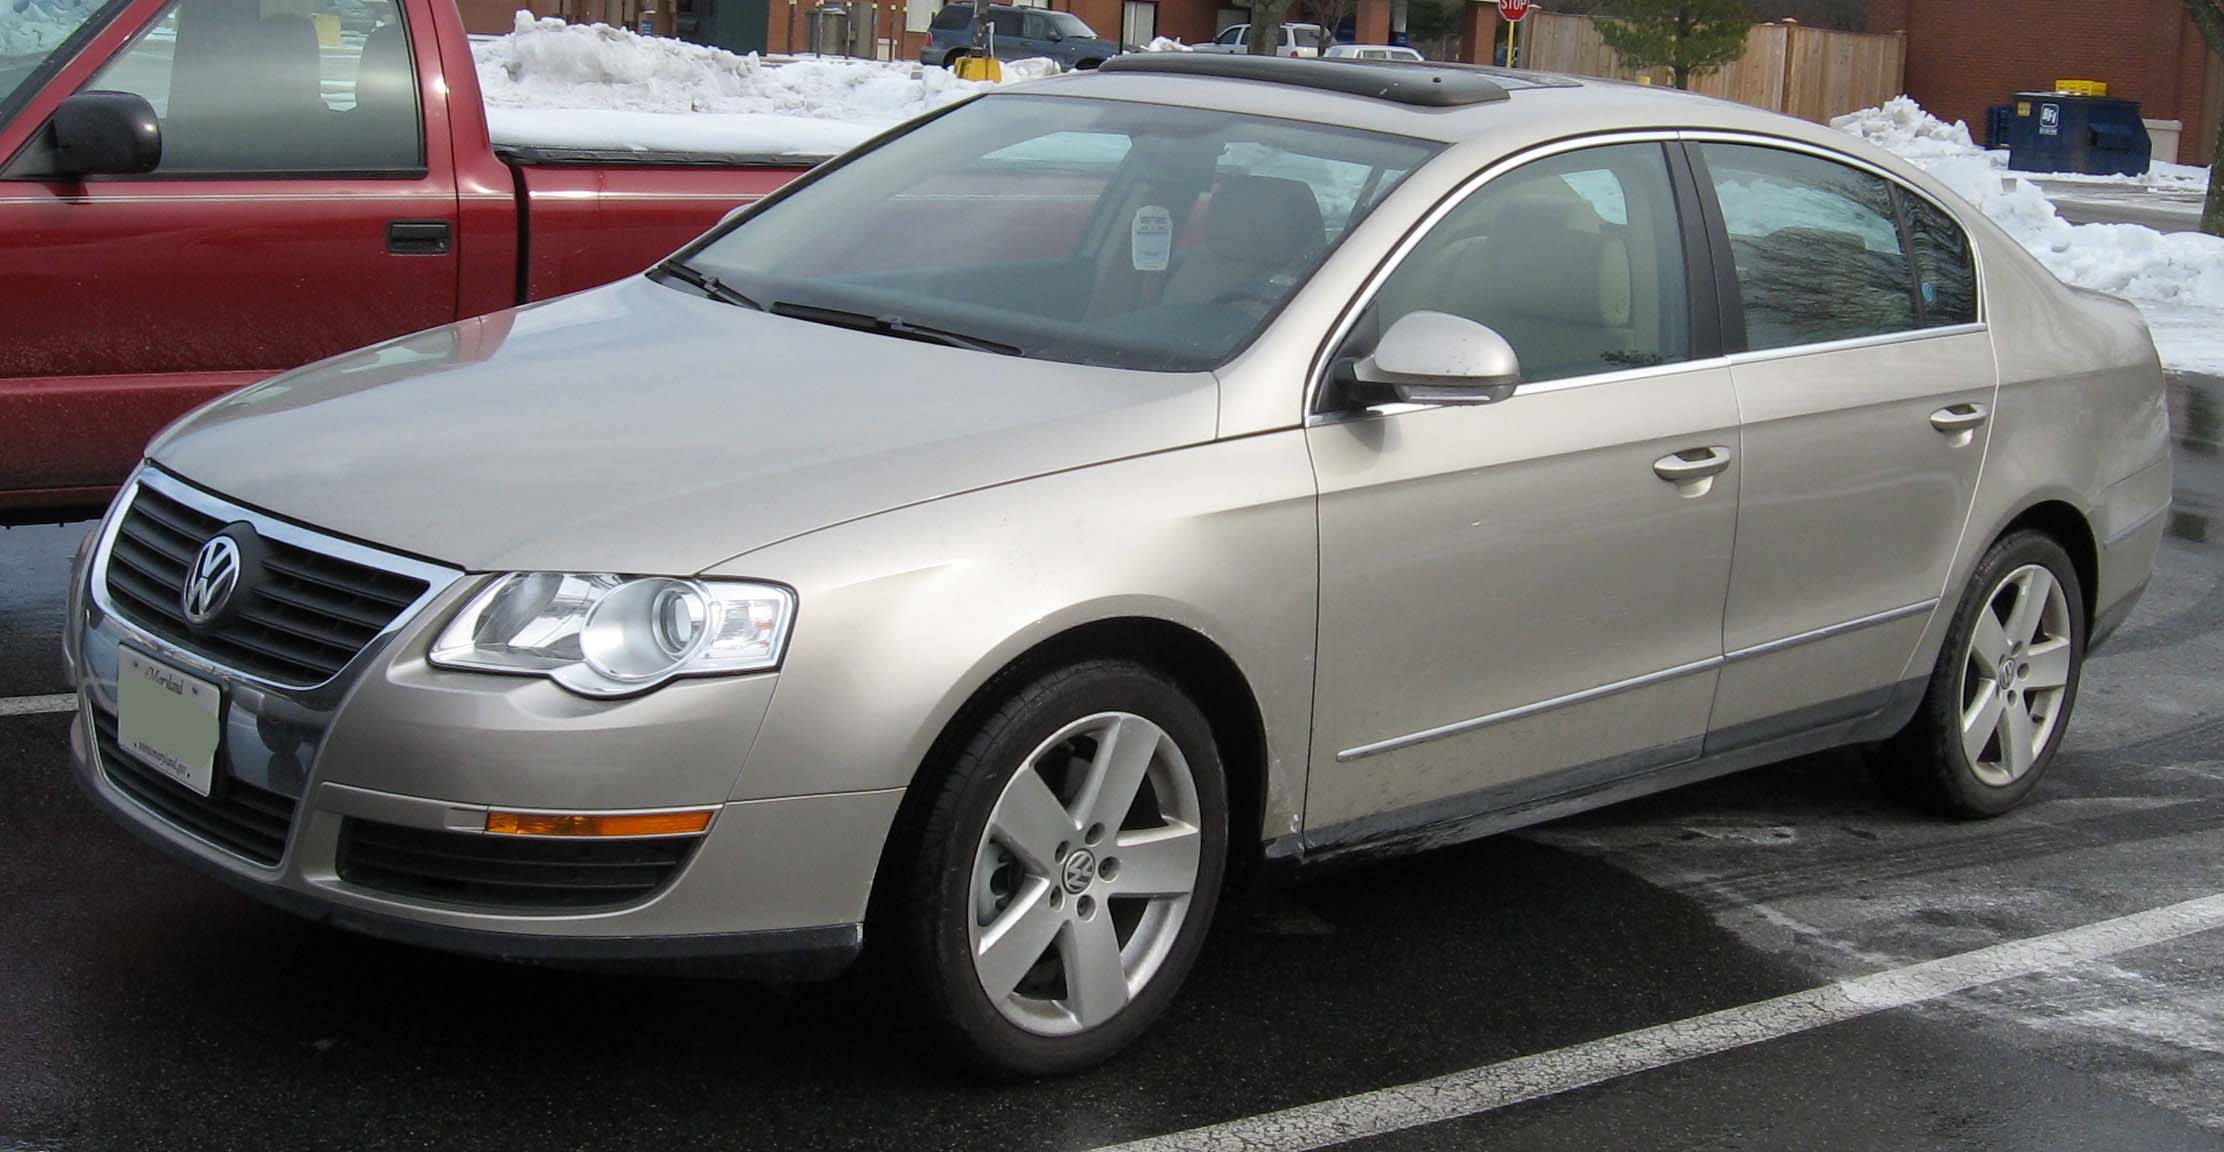 2006 volkswagen passat photos informations articles. Black Bedroom Furniture Sets. Home Design Ideas